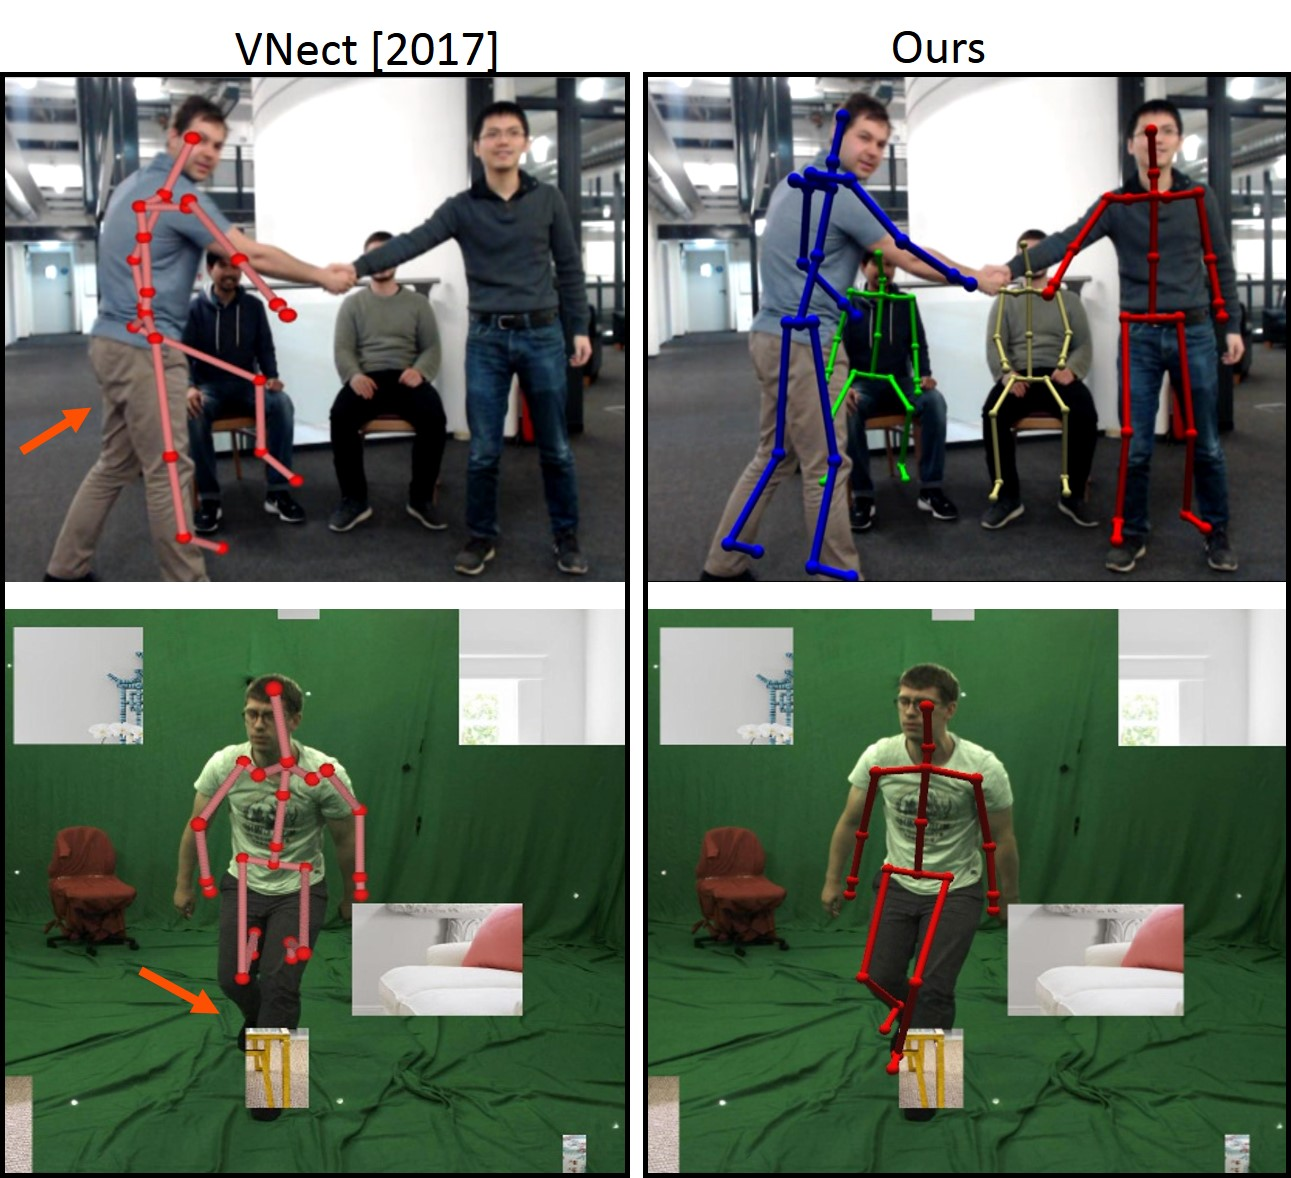 Real-time 3D Pose approaches such as VNect